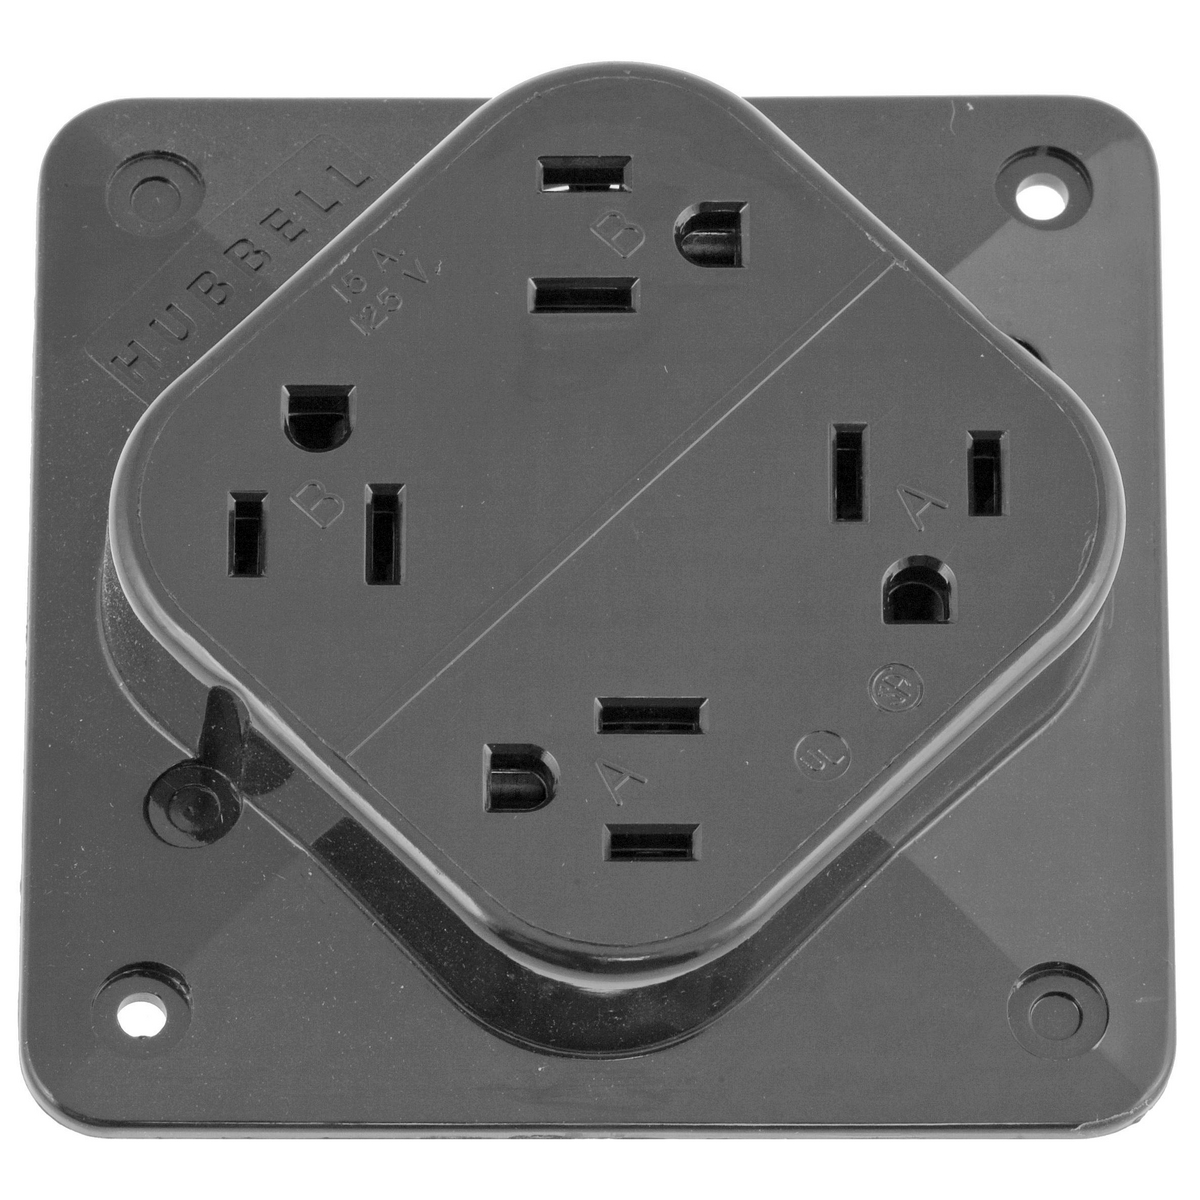 Hubbell HBL415GY 15 Amp 125 Volt 2-Pole 3-Wire NEMA 5-15R Gray Straight Blade Receptacle